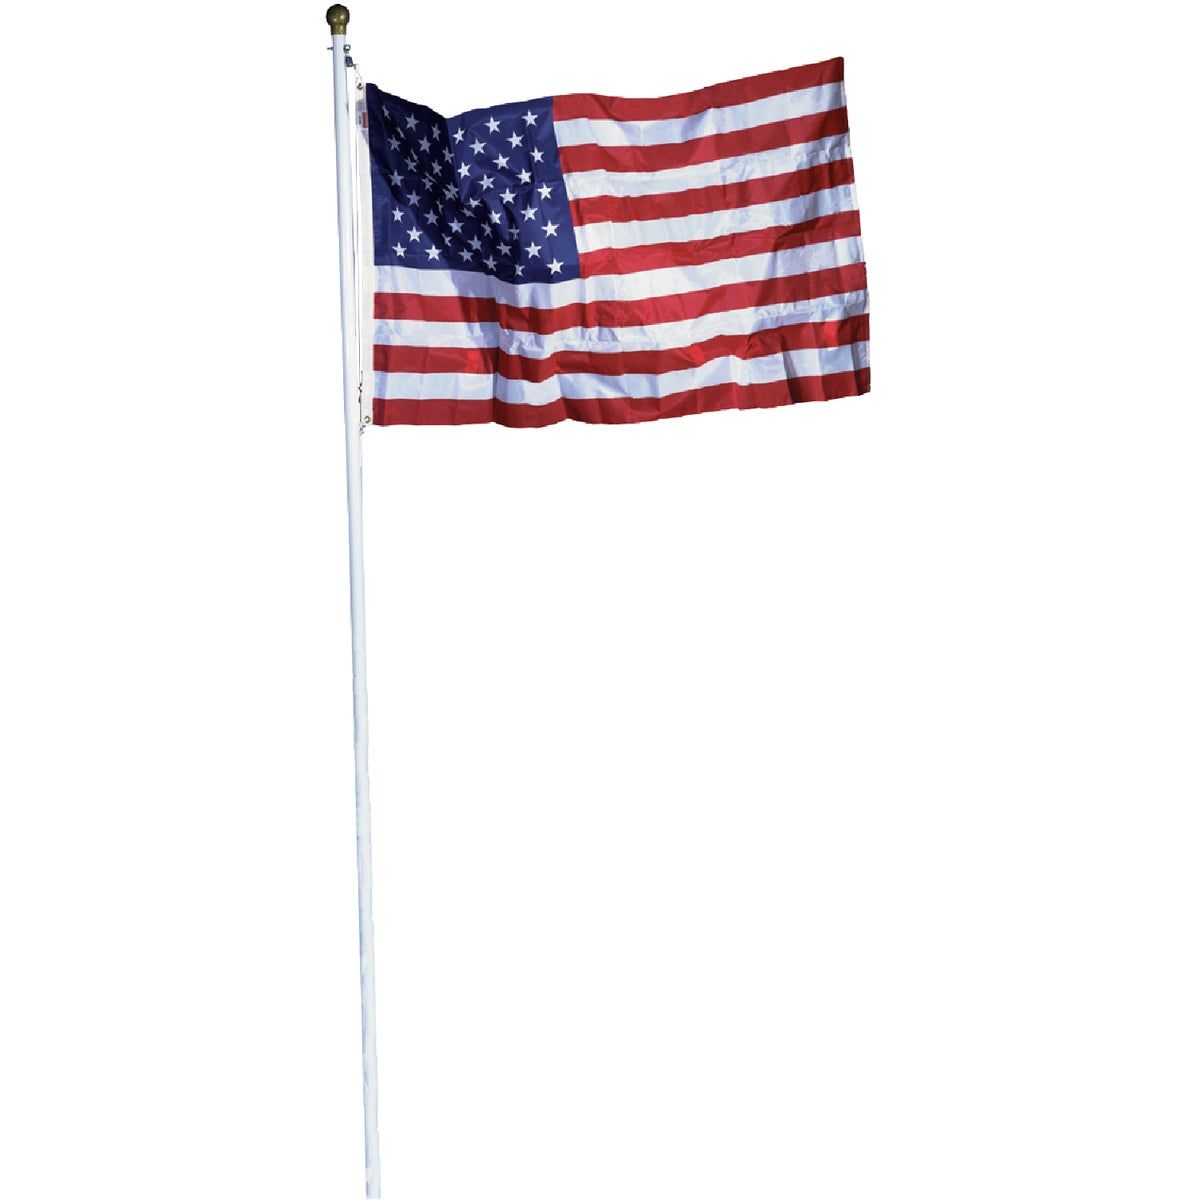 18' STEEL FLAG POLE KIT